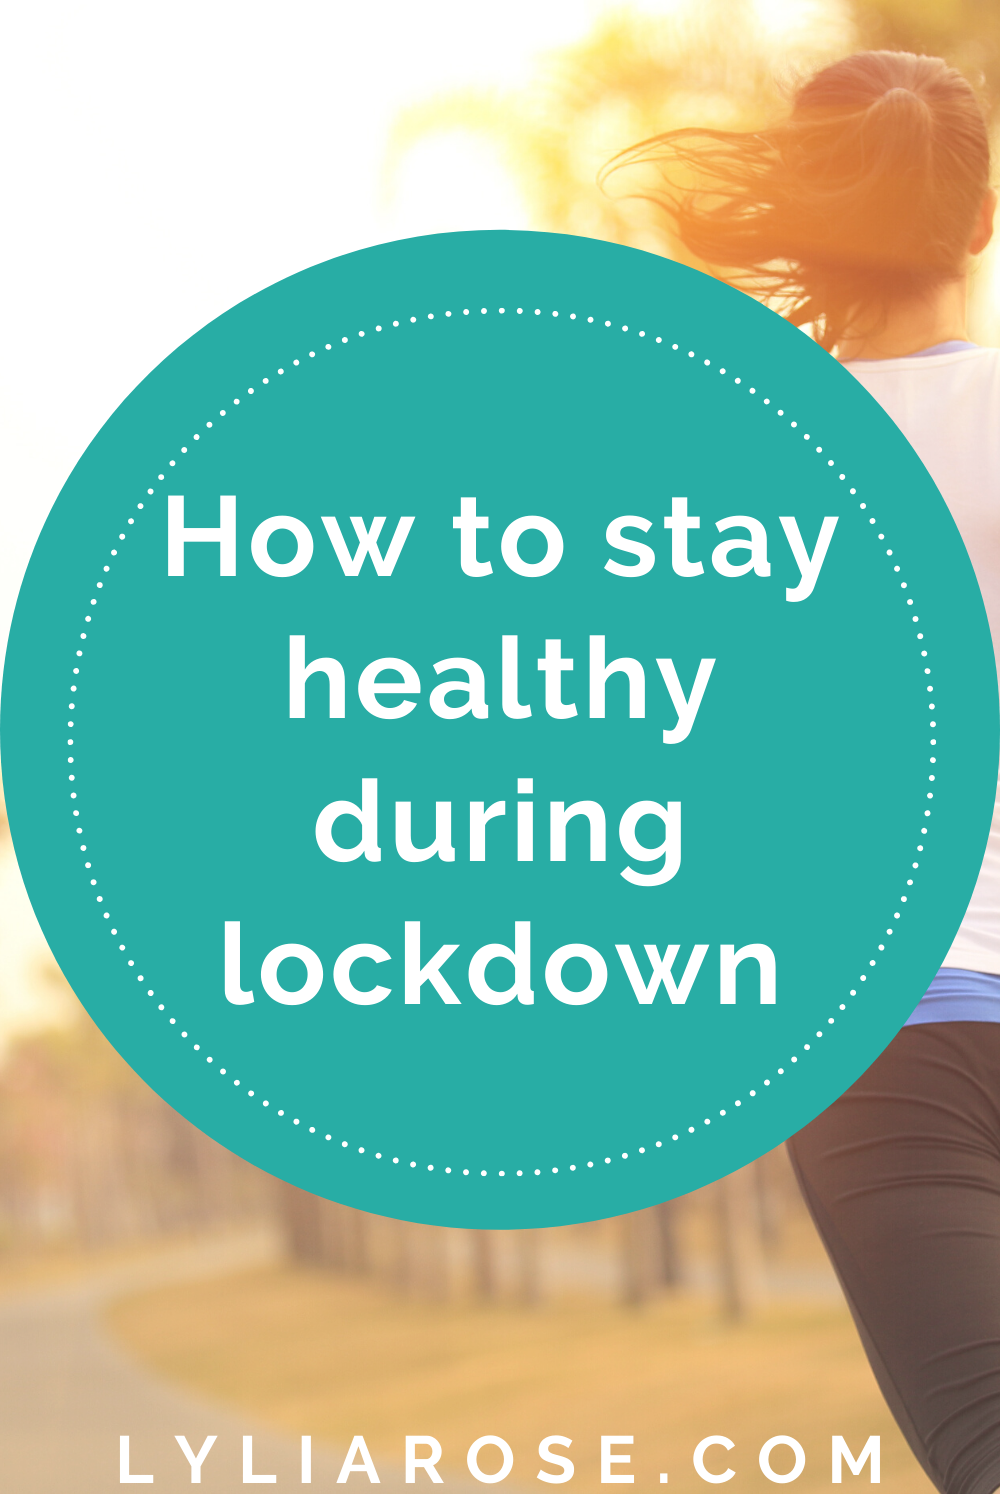 How to stay healthy during lockdown (4)